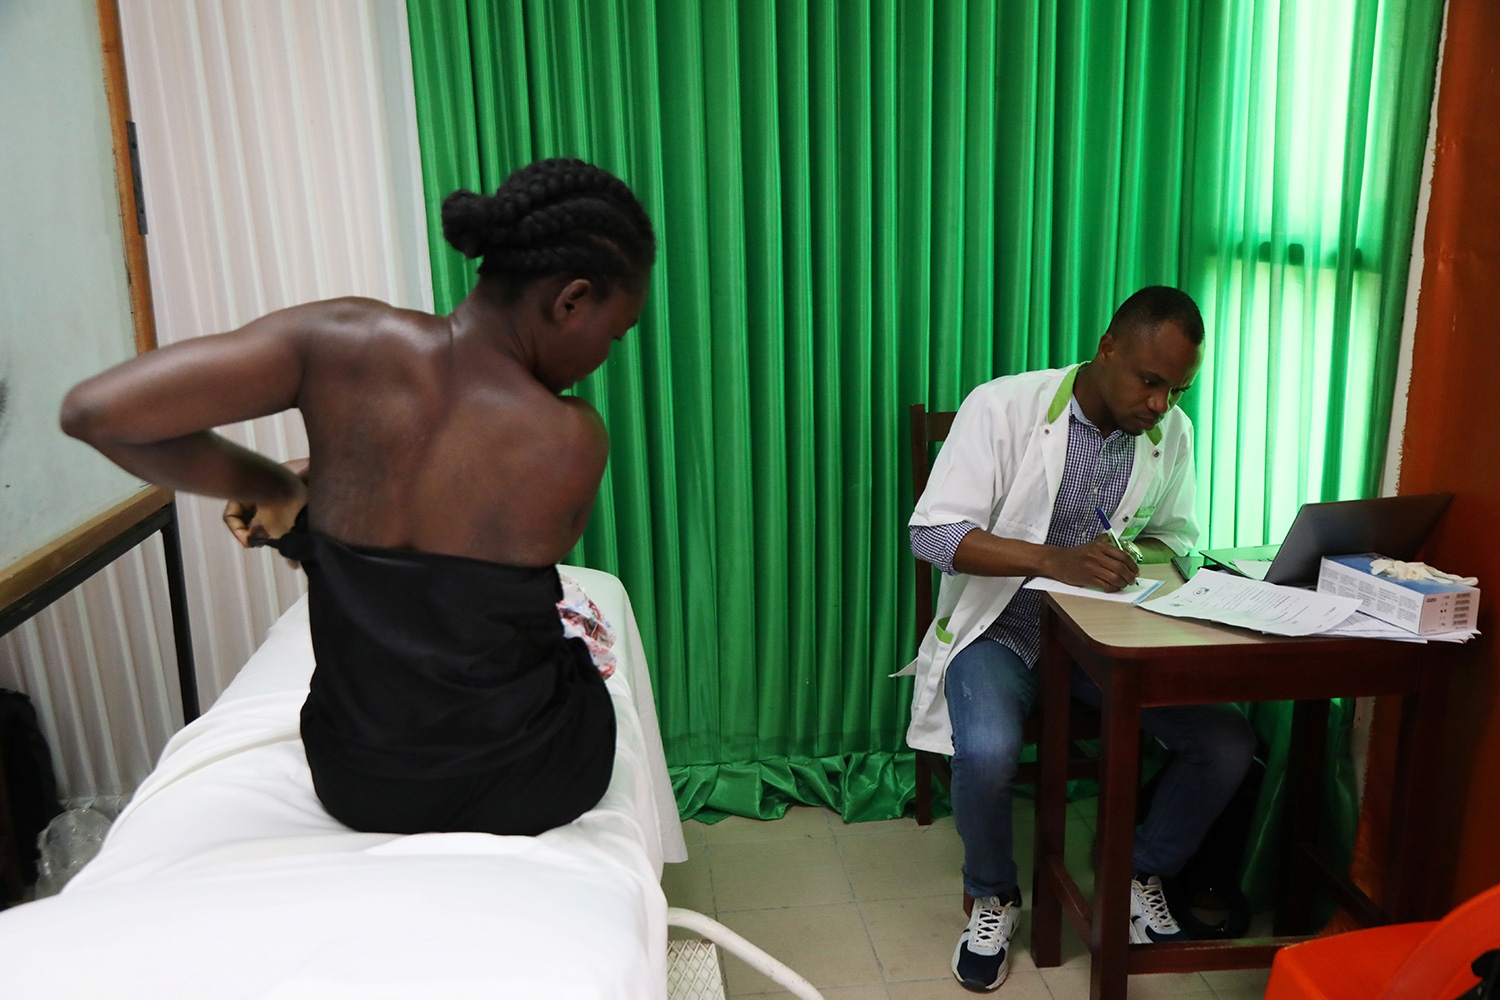 The photo shows the woman on a bed while a doctor sits in a chair next to her. She is in the process of undressing.